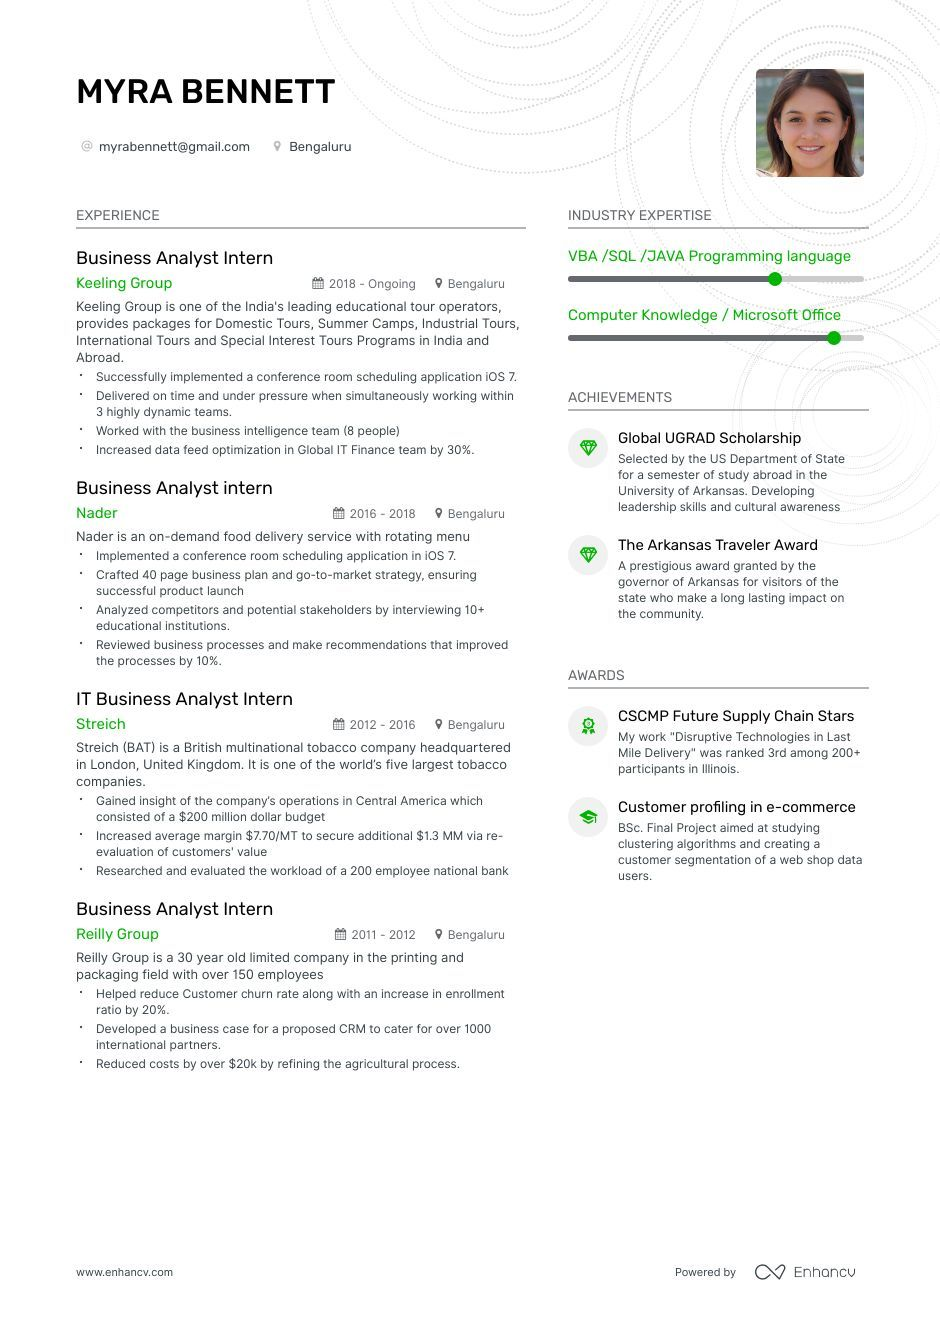 The ultimate 2019 guide for Business Analyst Intern resume